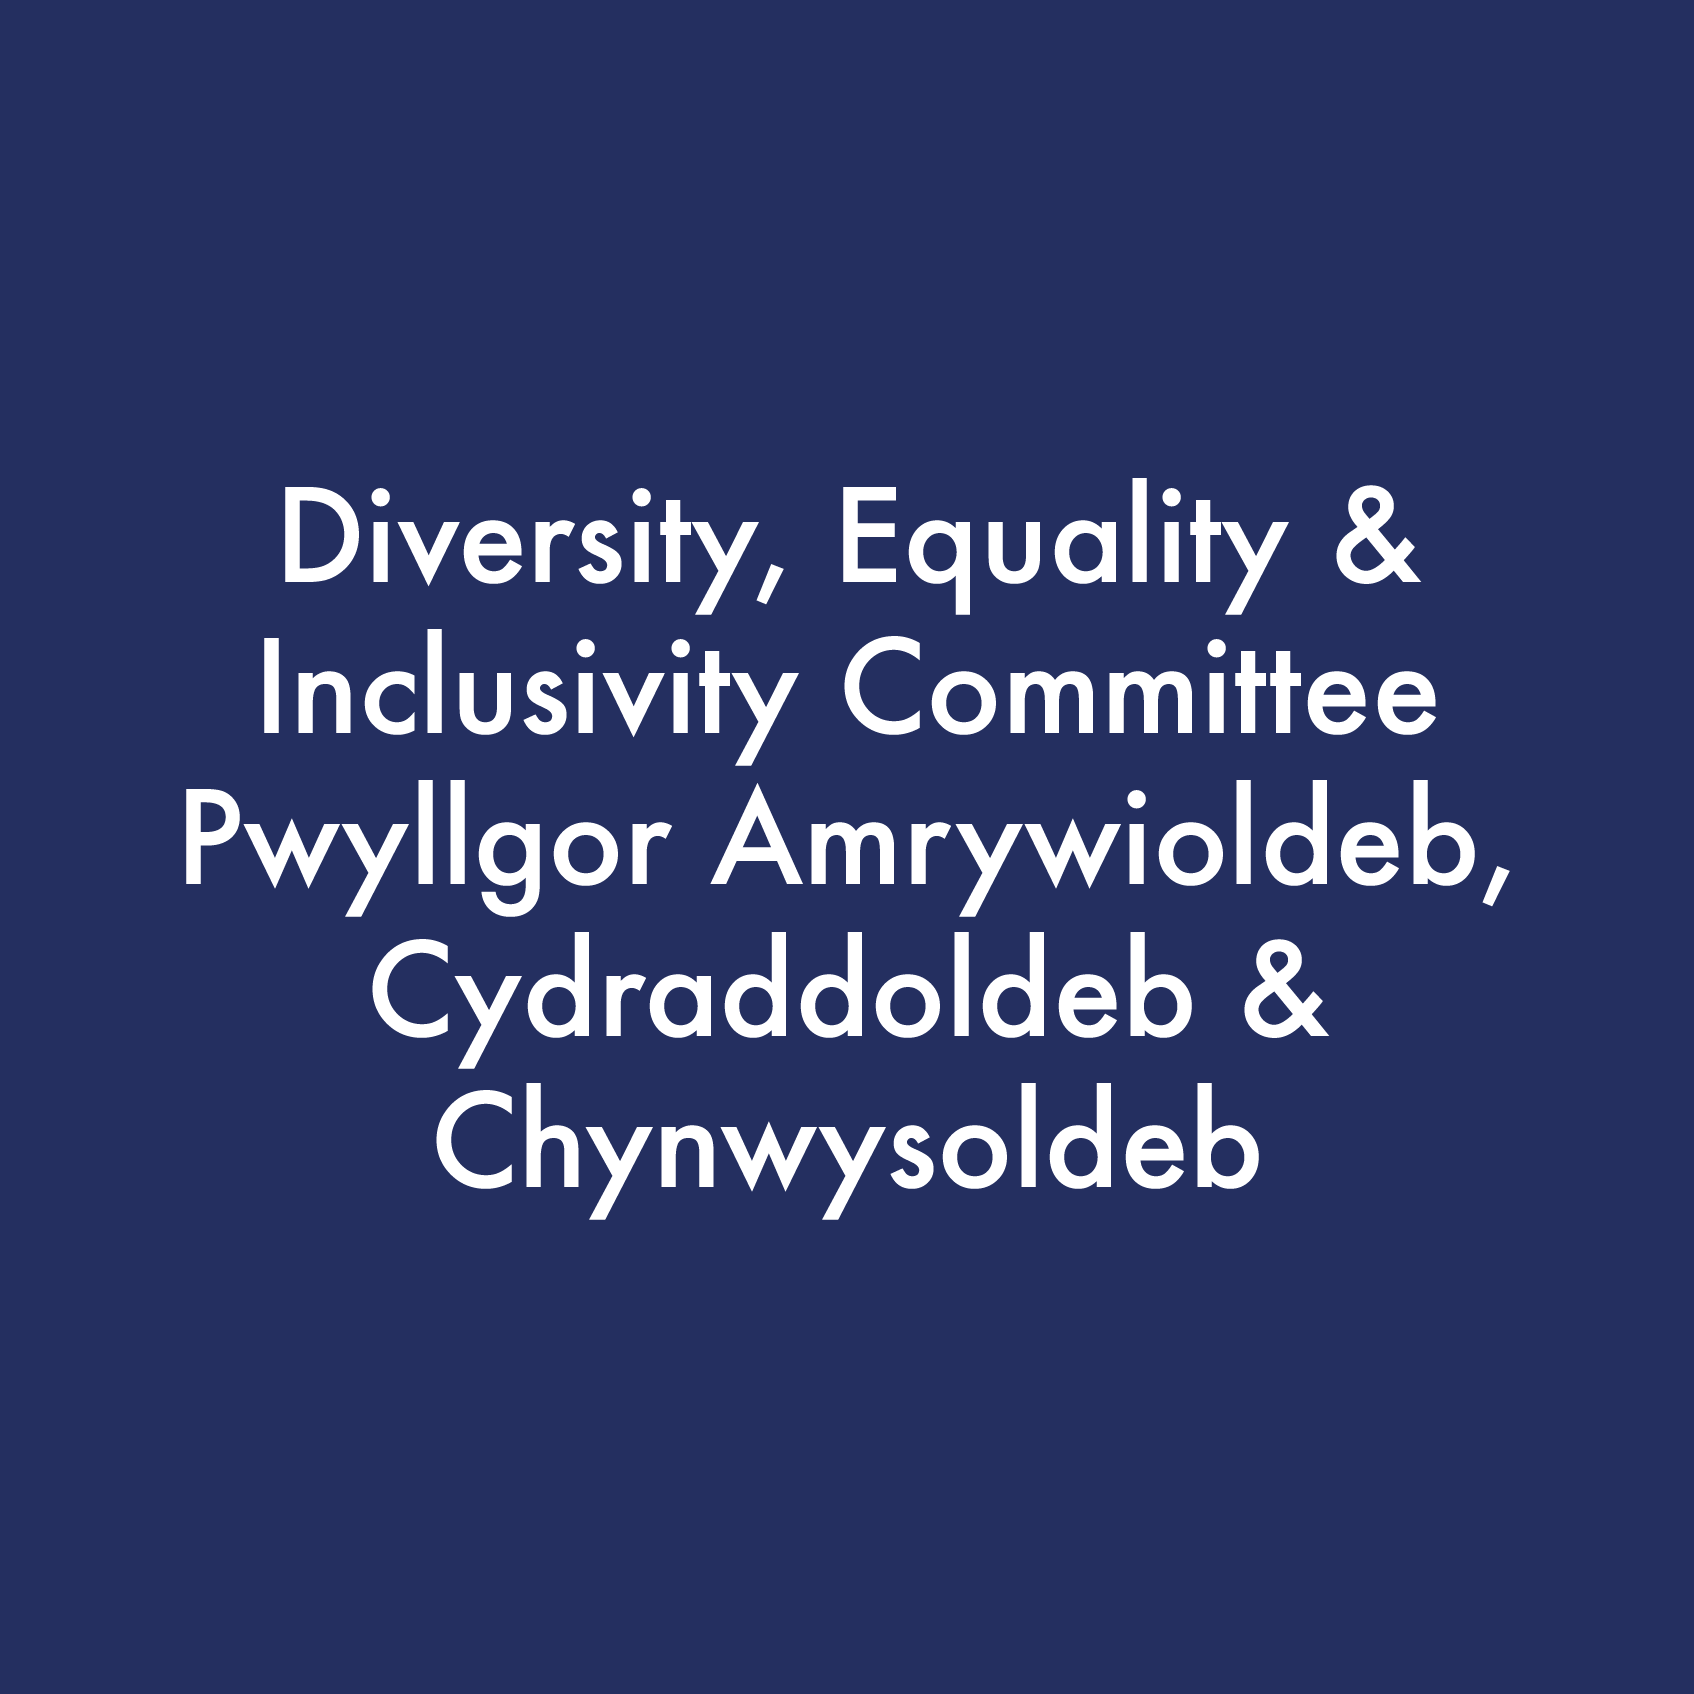 Diversity, Equality and Inclusivity Committee logo